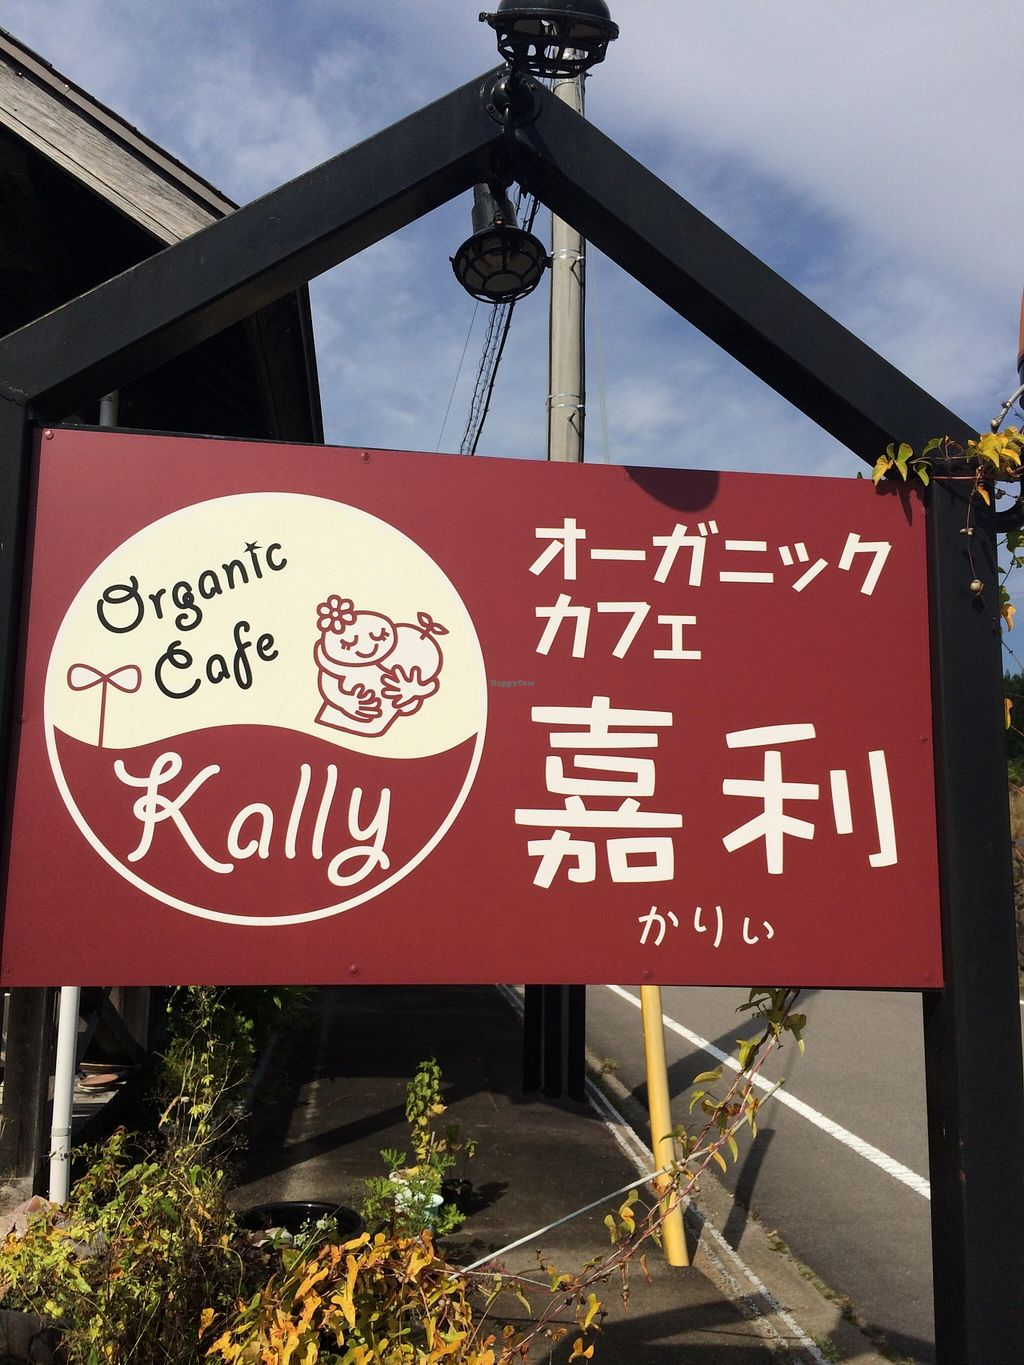 """Photo of Organic Cafe Kally  by <a href=""""/members/profile/Vegeiko"""">Vegeiko</a> <br/>Signboard and they have free parking lot! <br/> October 4, 2015  - <a href='/contact/abuse/image/64182/120226'>Report</a>"""